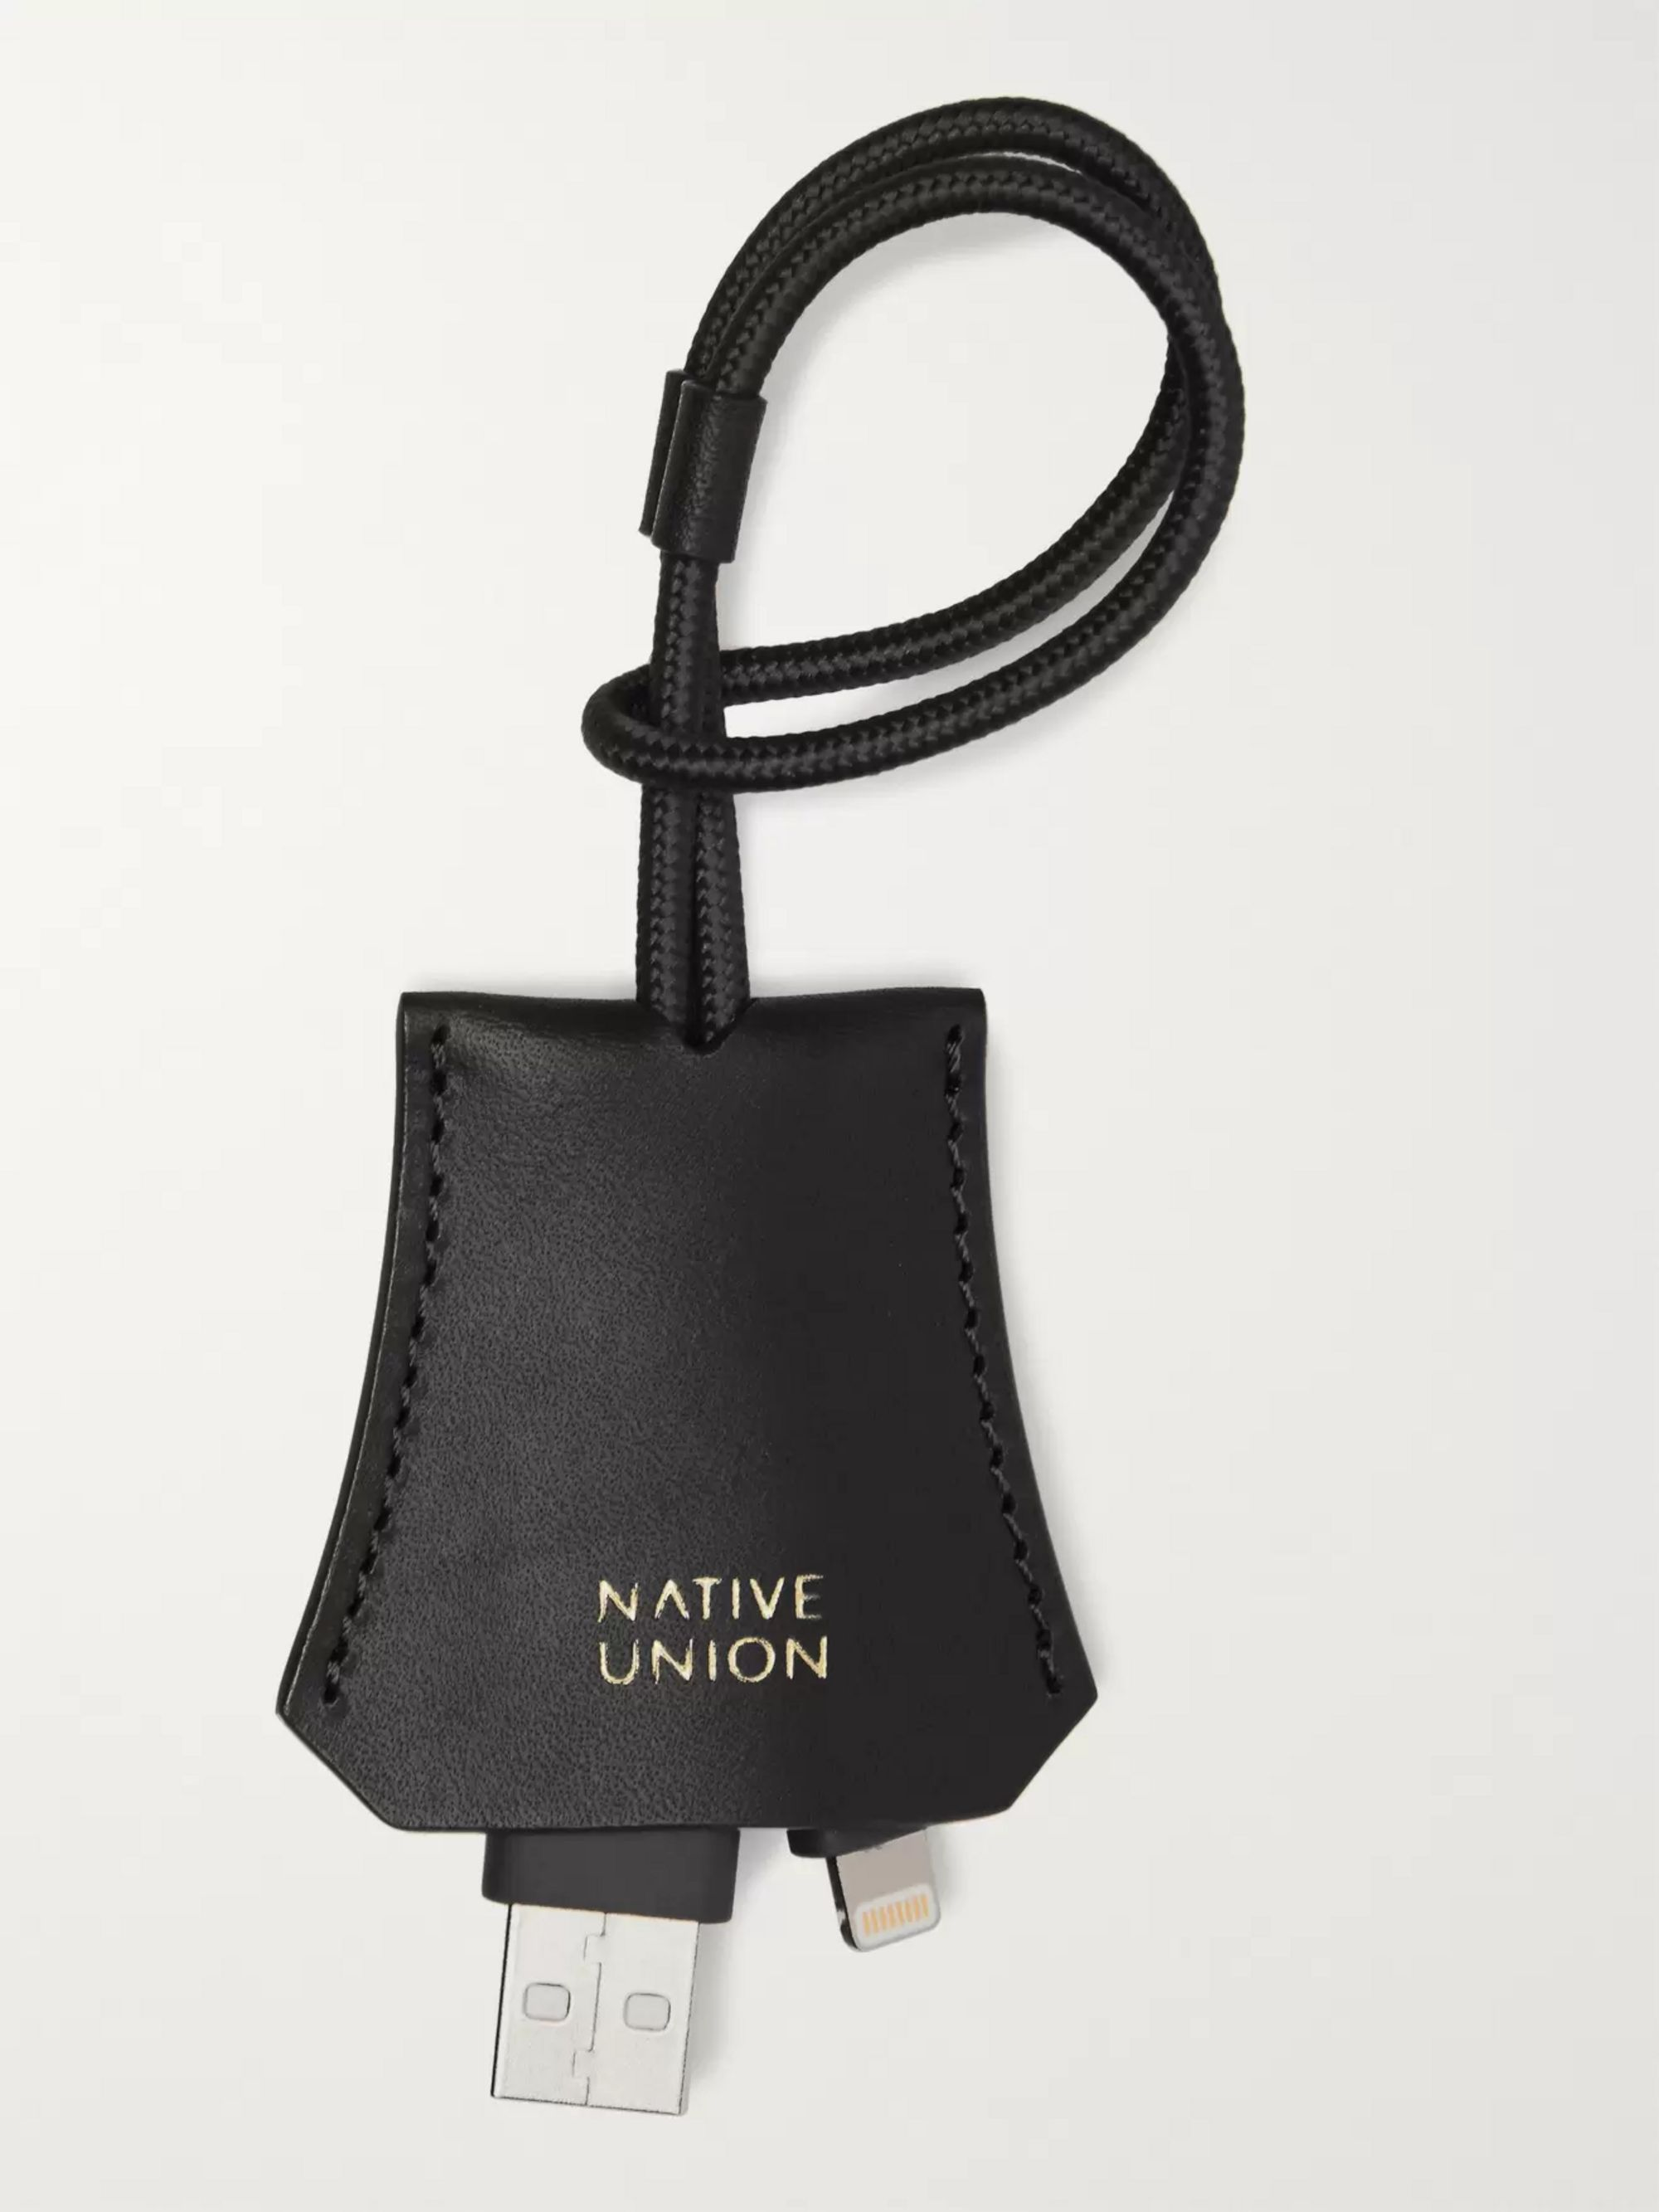 Native Union Tag Leather Lightning Cable